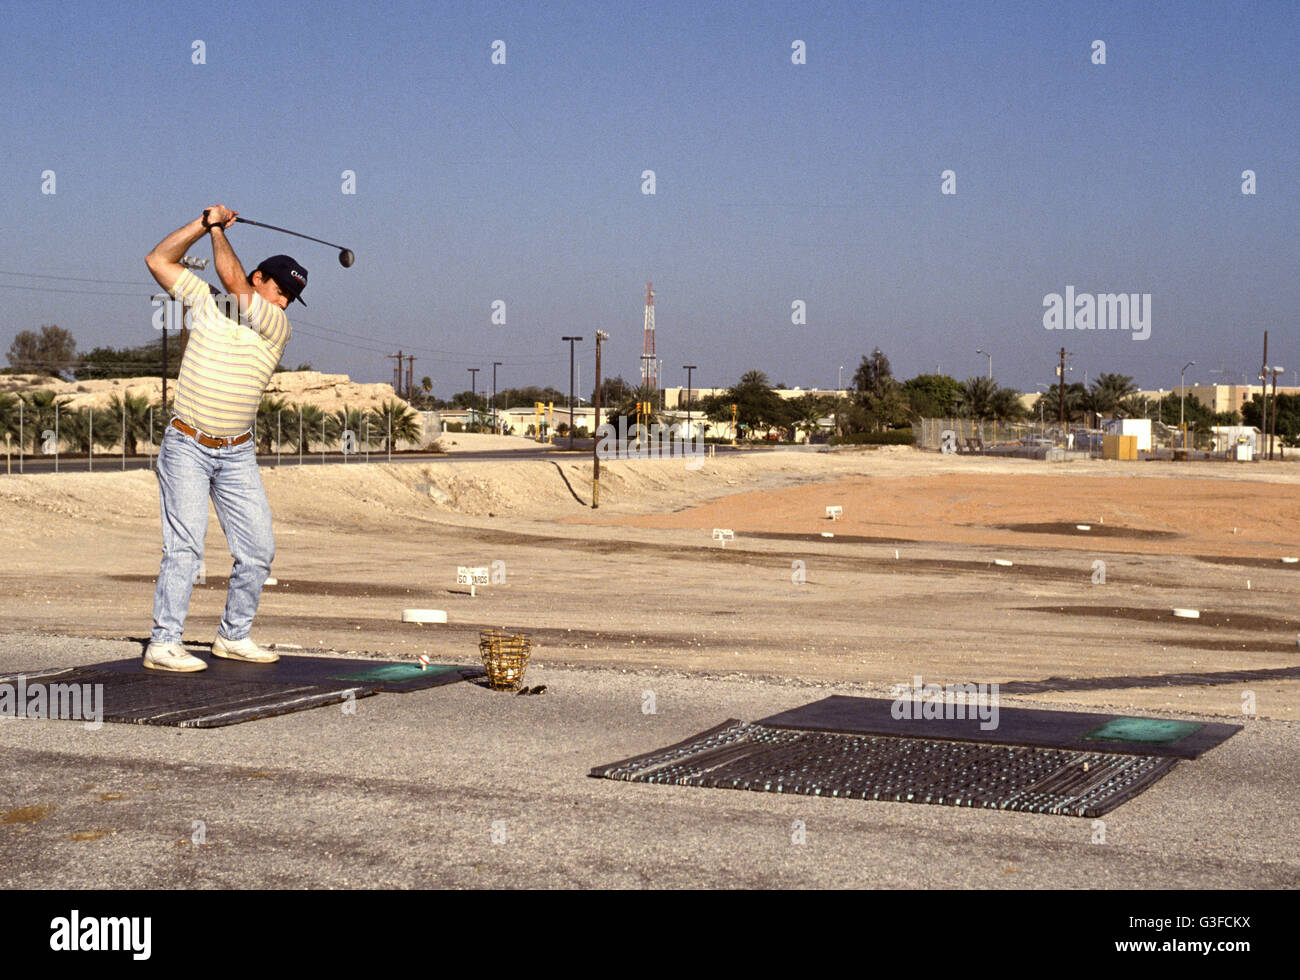 dhahran, saudi arabia - the golf practicing range at the